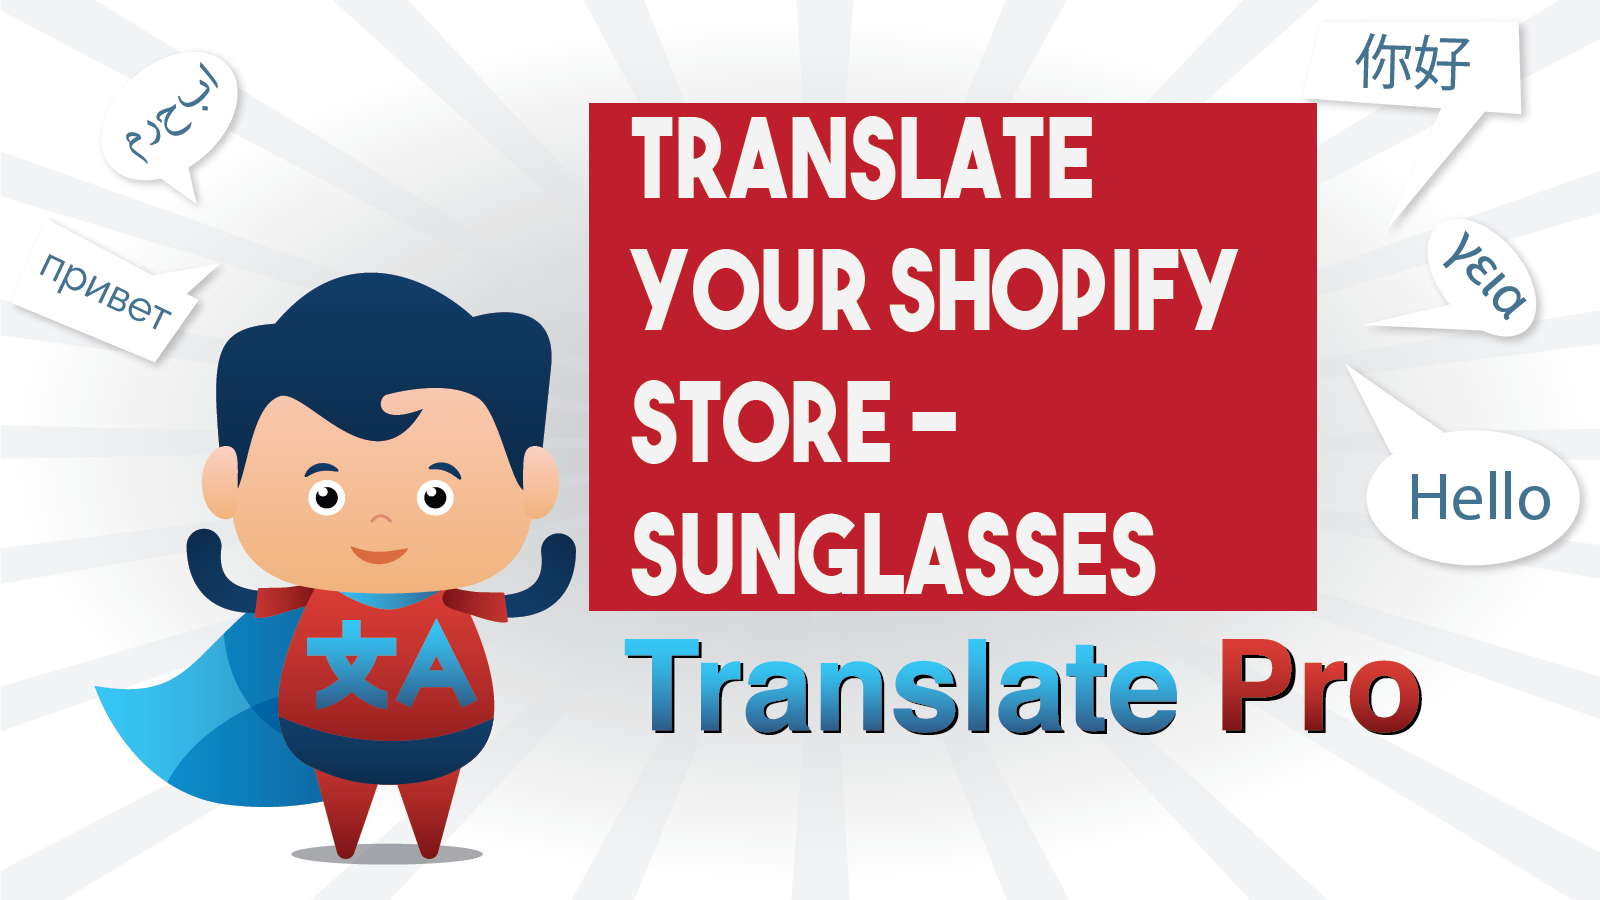 How To Translate Your Shopify Sunglasses Store